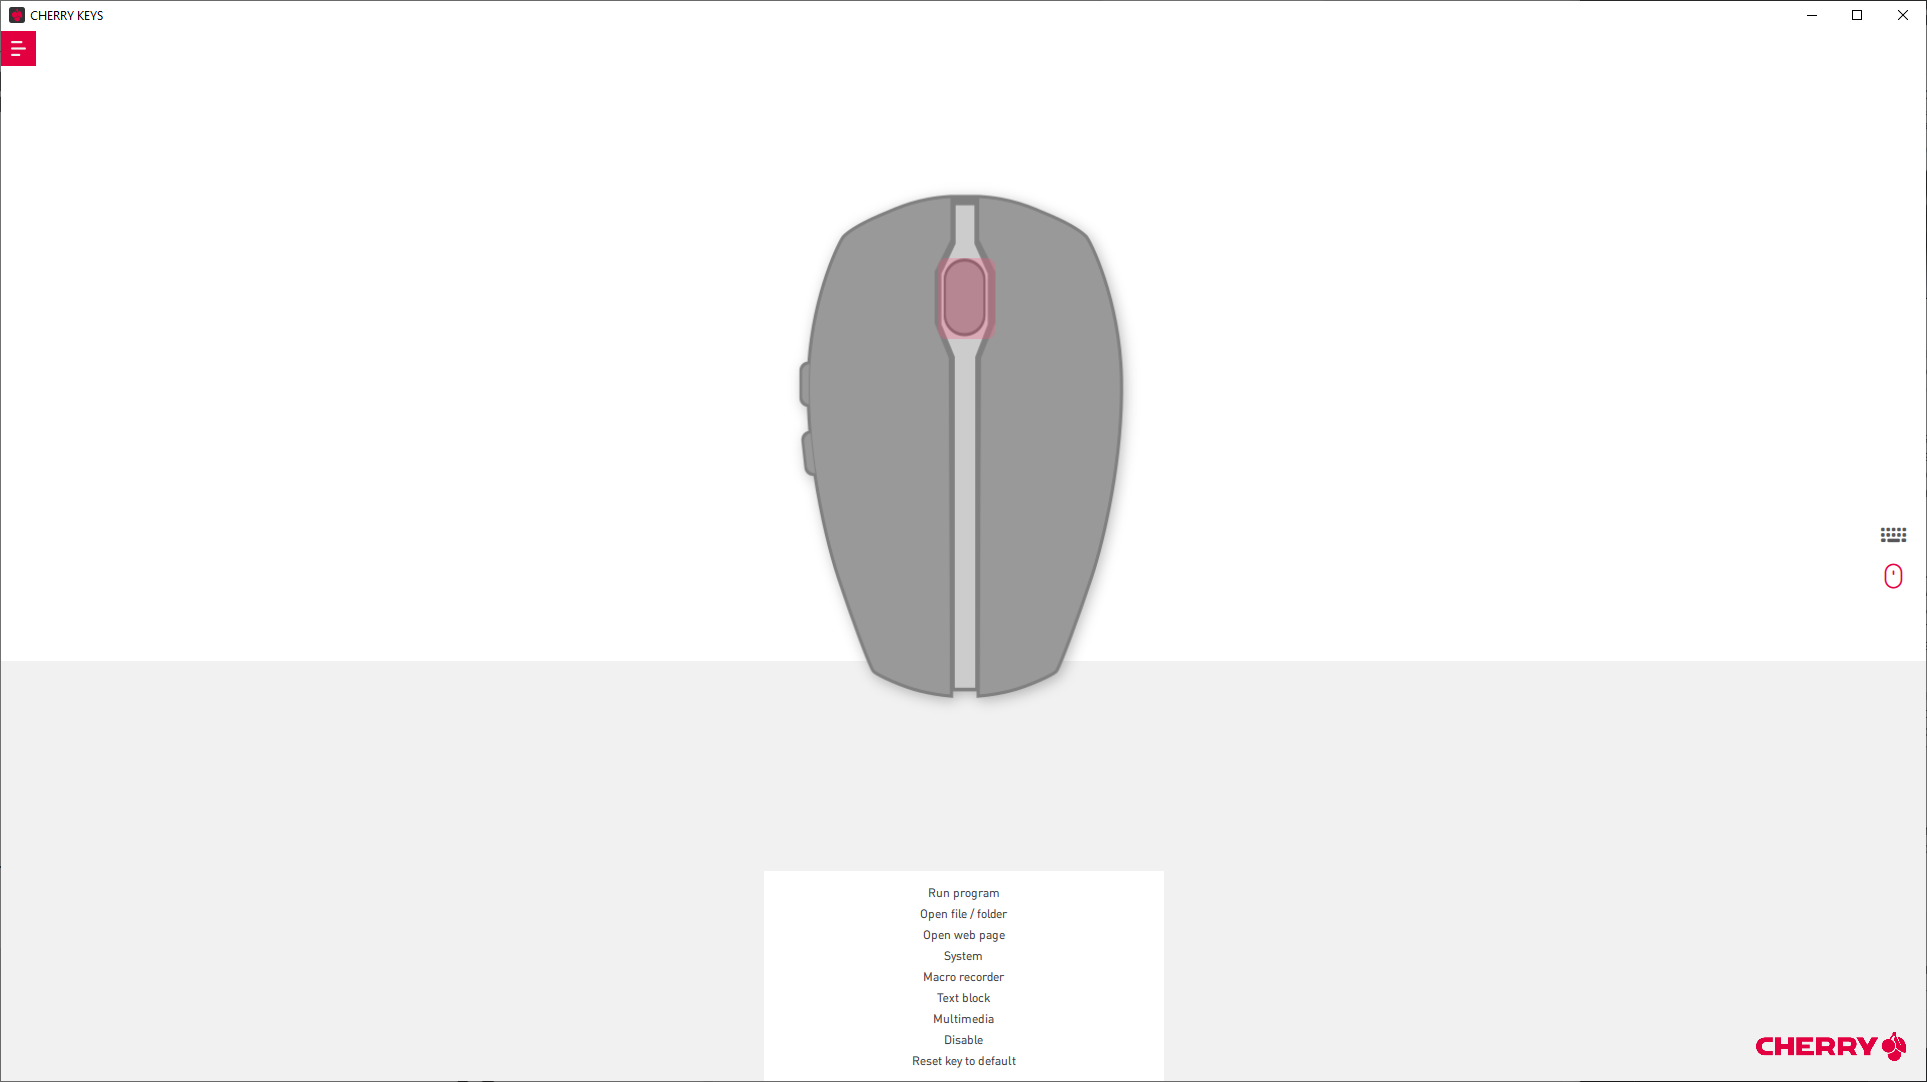 Cherry Keys software shows option to reprogram Gentix mouse buttons